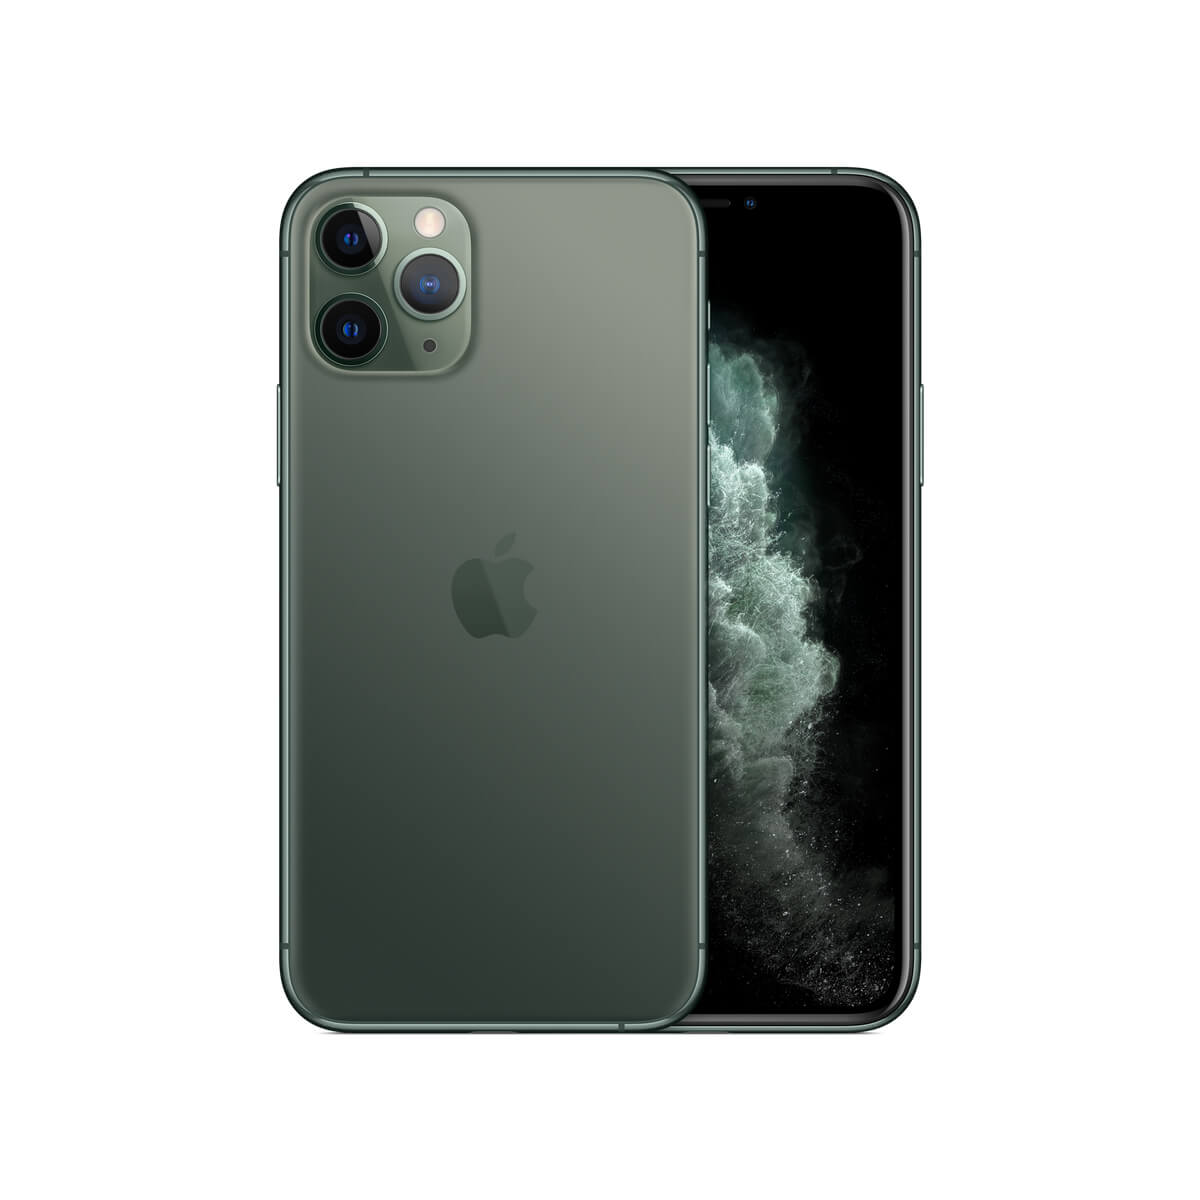 Apple iPhone 11 Pro (64GB)